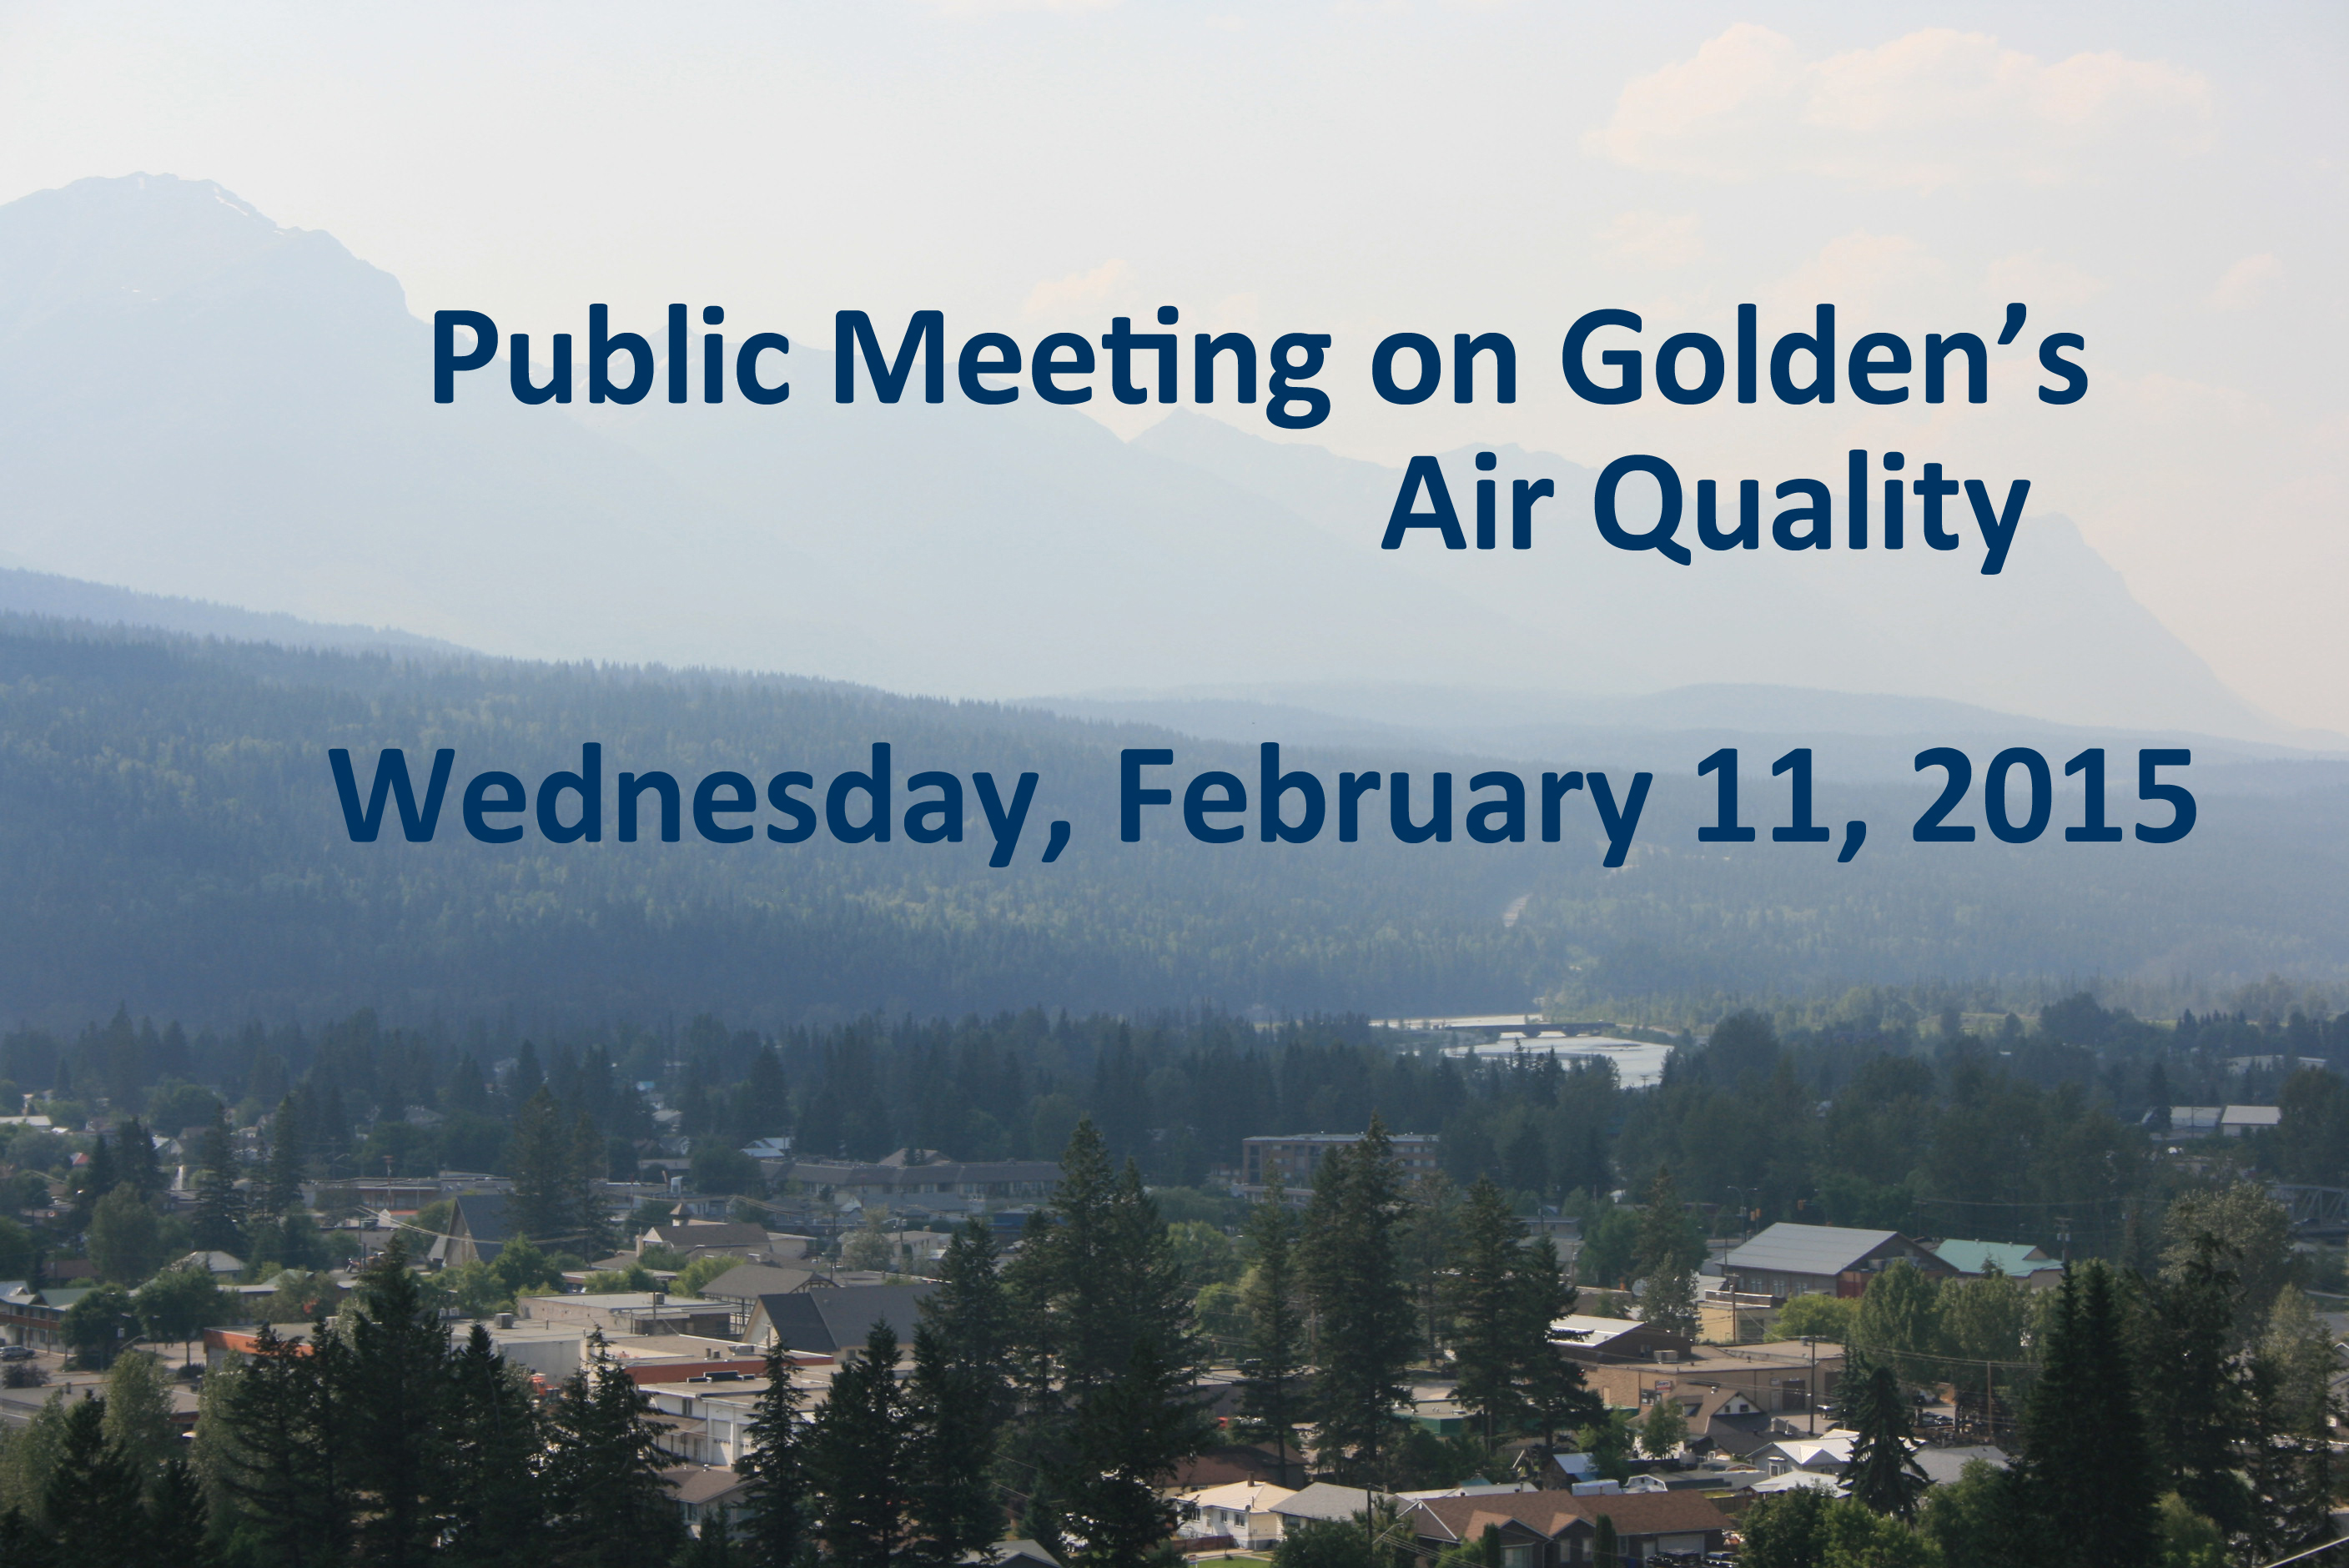 Public Meeting on Air Quality in Golden